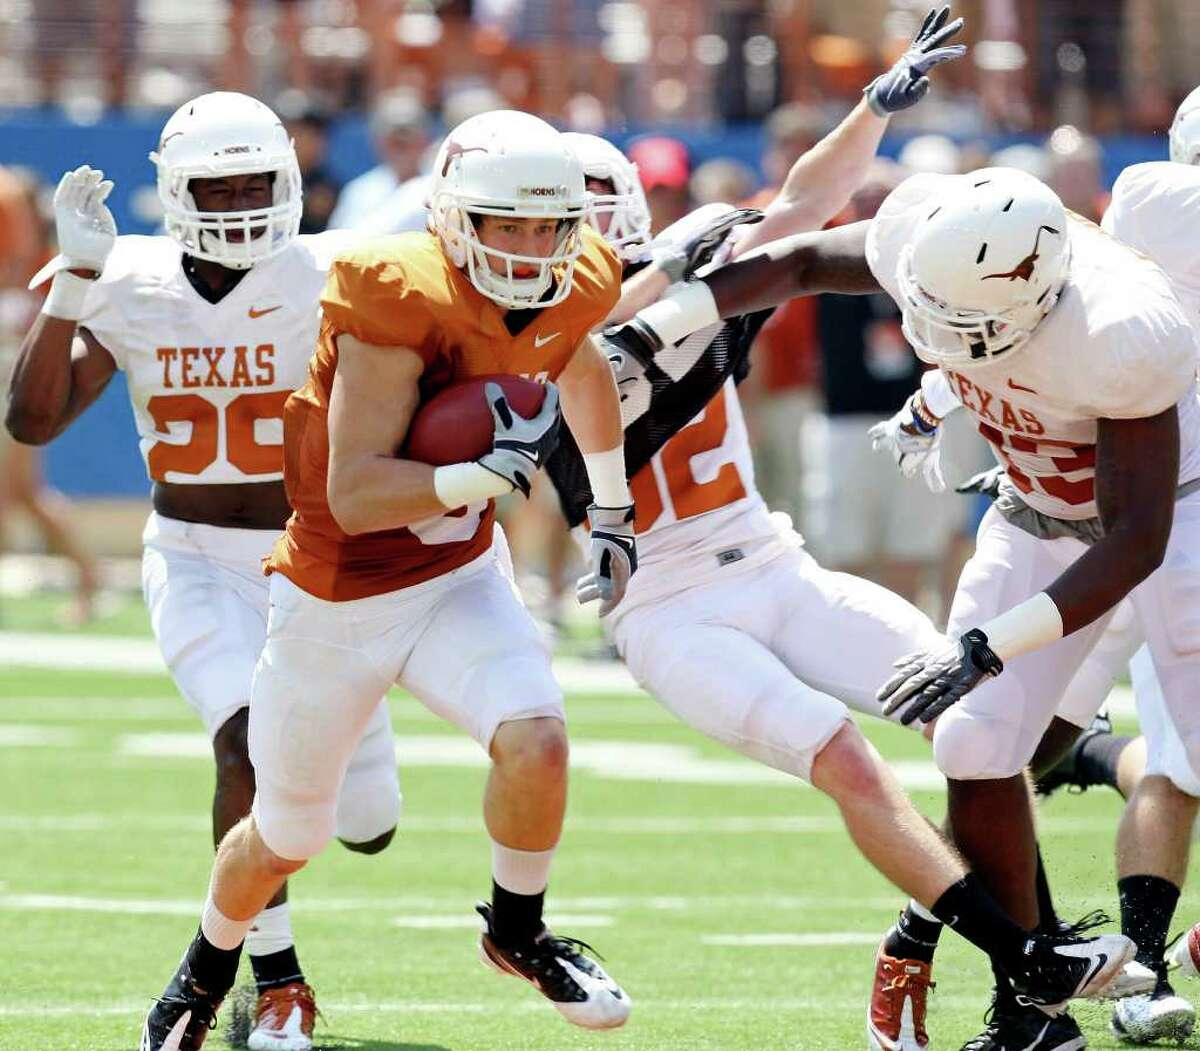 Texas' Jaxon Shipley heads up field during first half action of the Orange-White Scrimmage held Sunday, April 1, 2012 at Darrell K. Royal Texas Memorial Stadium in Austin.